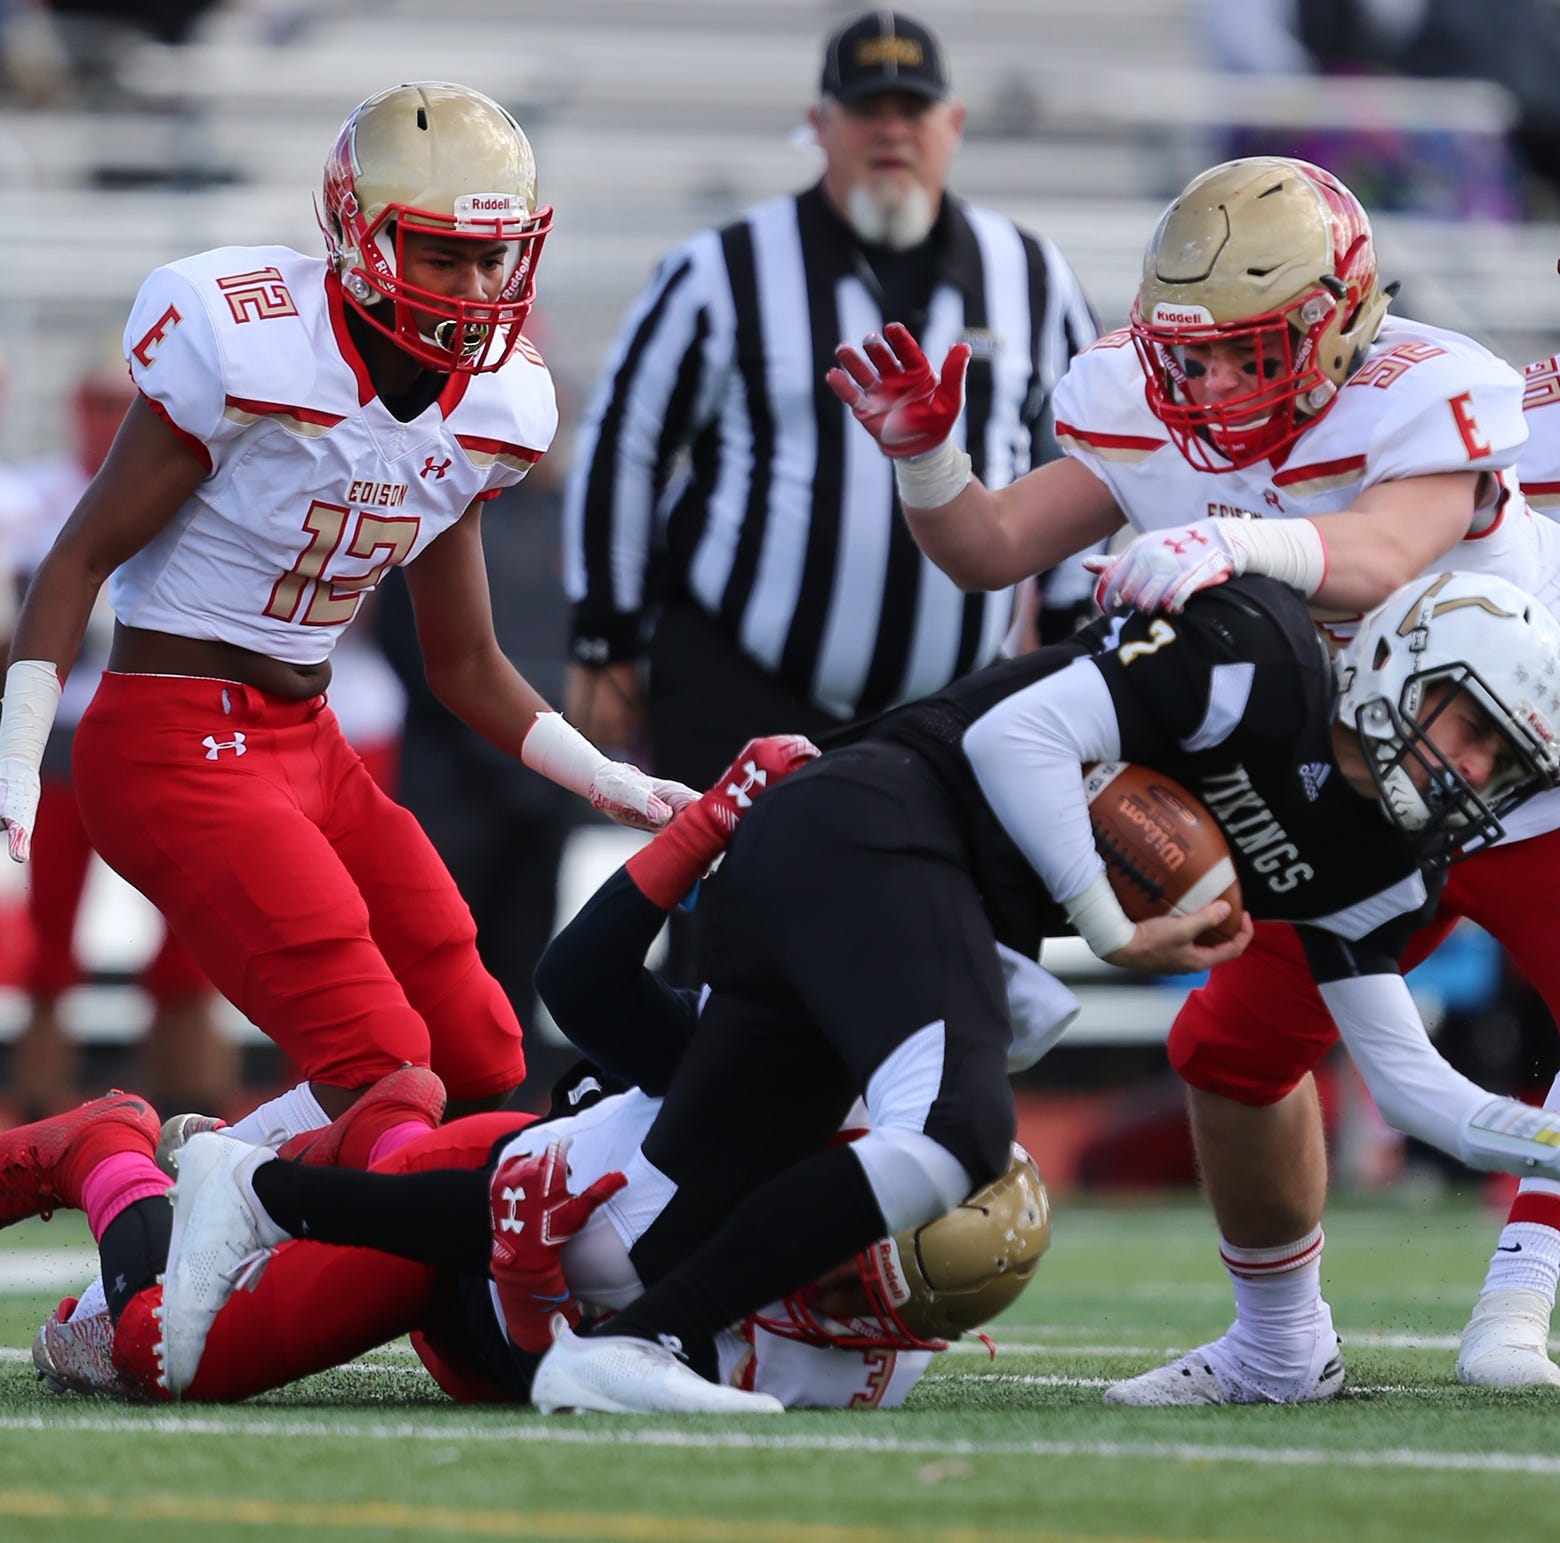 NJ football: Week 10 Media Blitz coverage of Mid-State, GMC playoff action